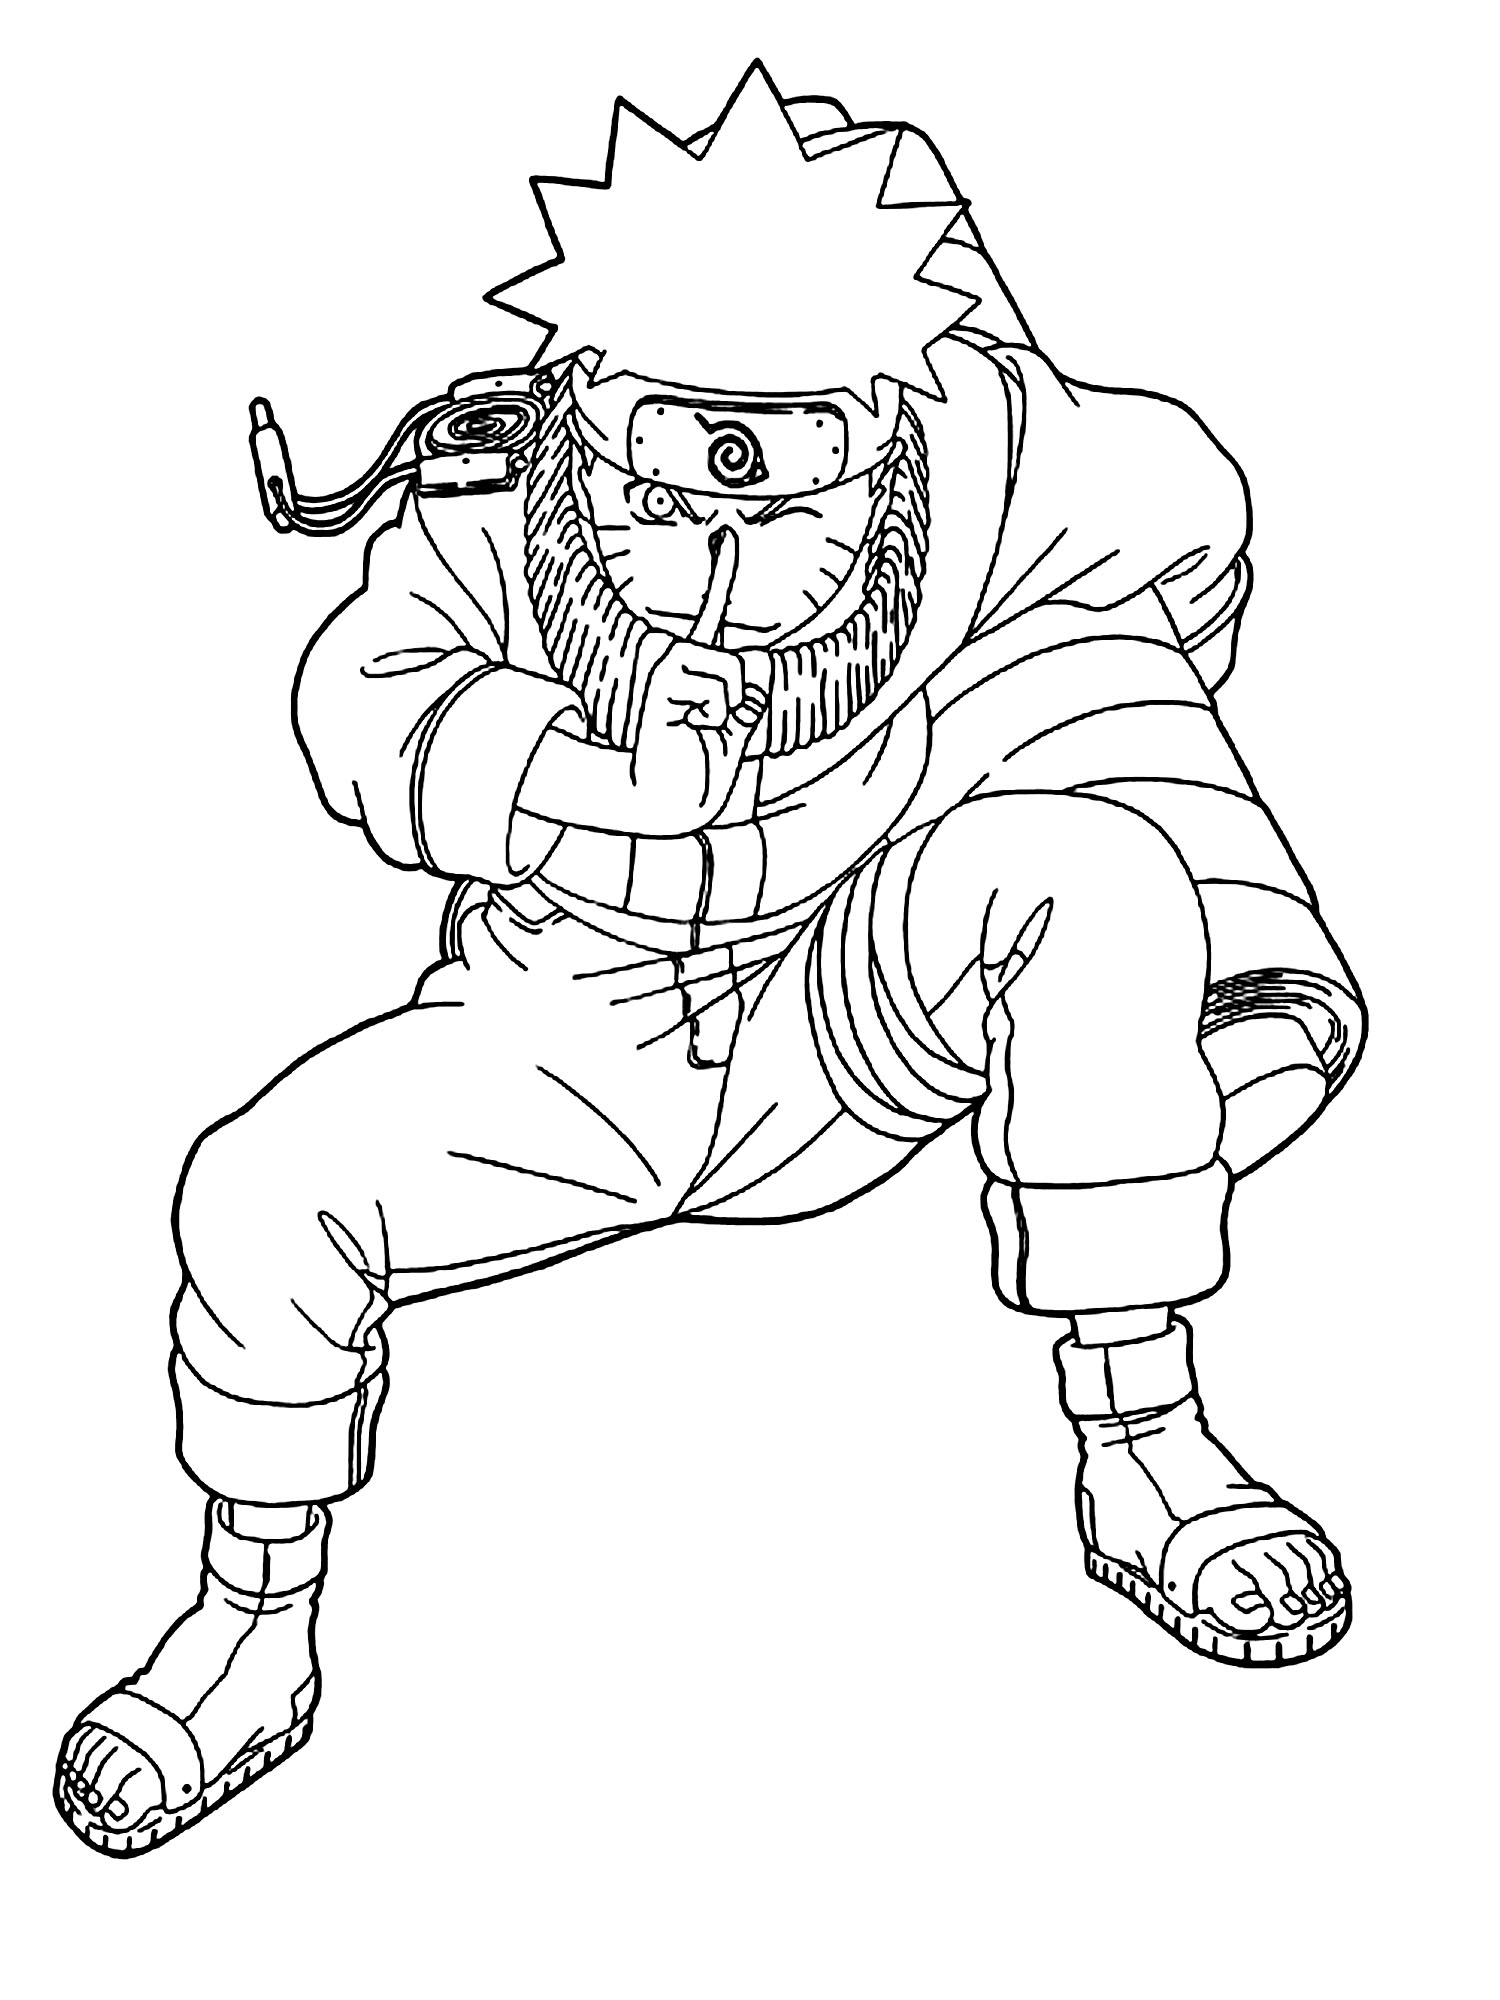 Simple Naruto coloring page to download for free